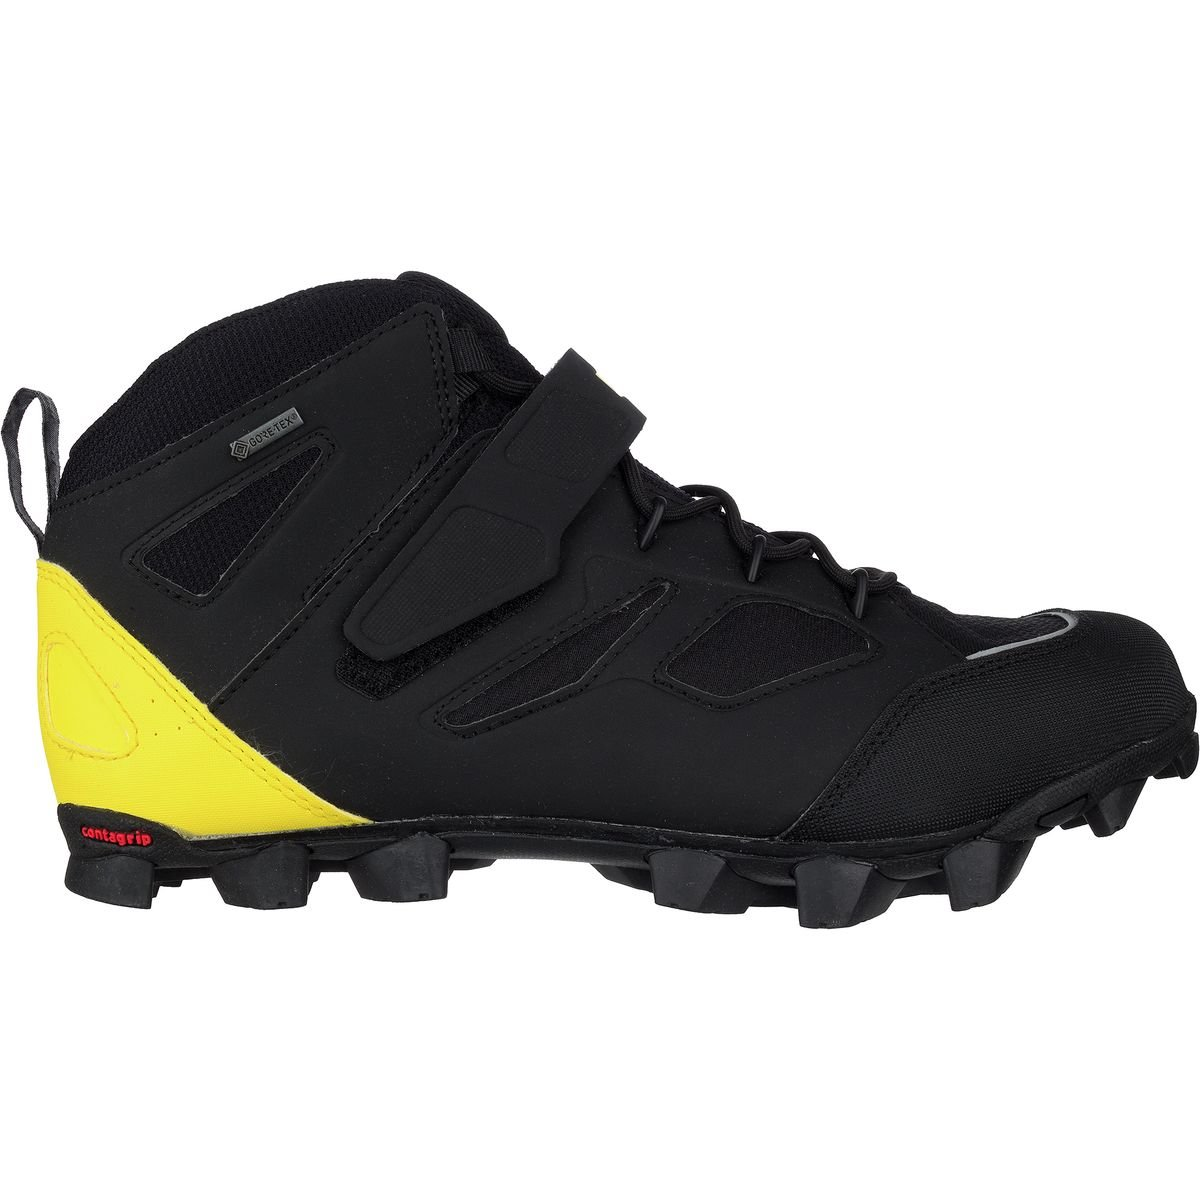 Mavic XA Pro h2o GTX Shoe – Men 's Black/Yellow Mavic/ブラック、US 13.0 / UK 12.5   B072J5K6GT